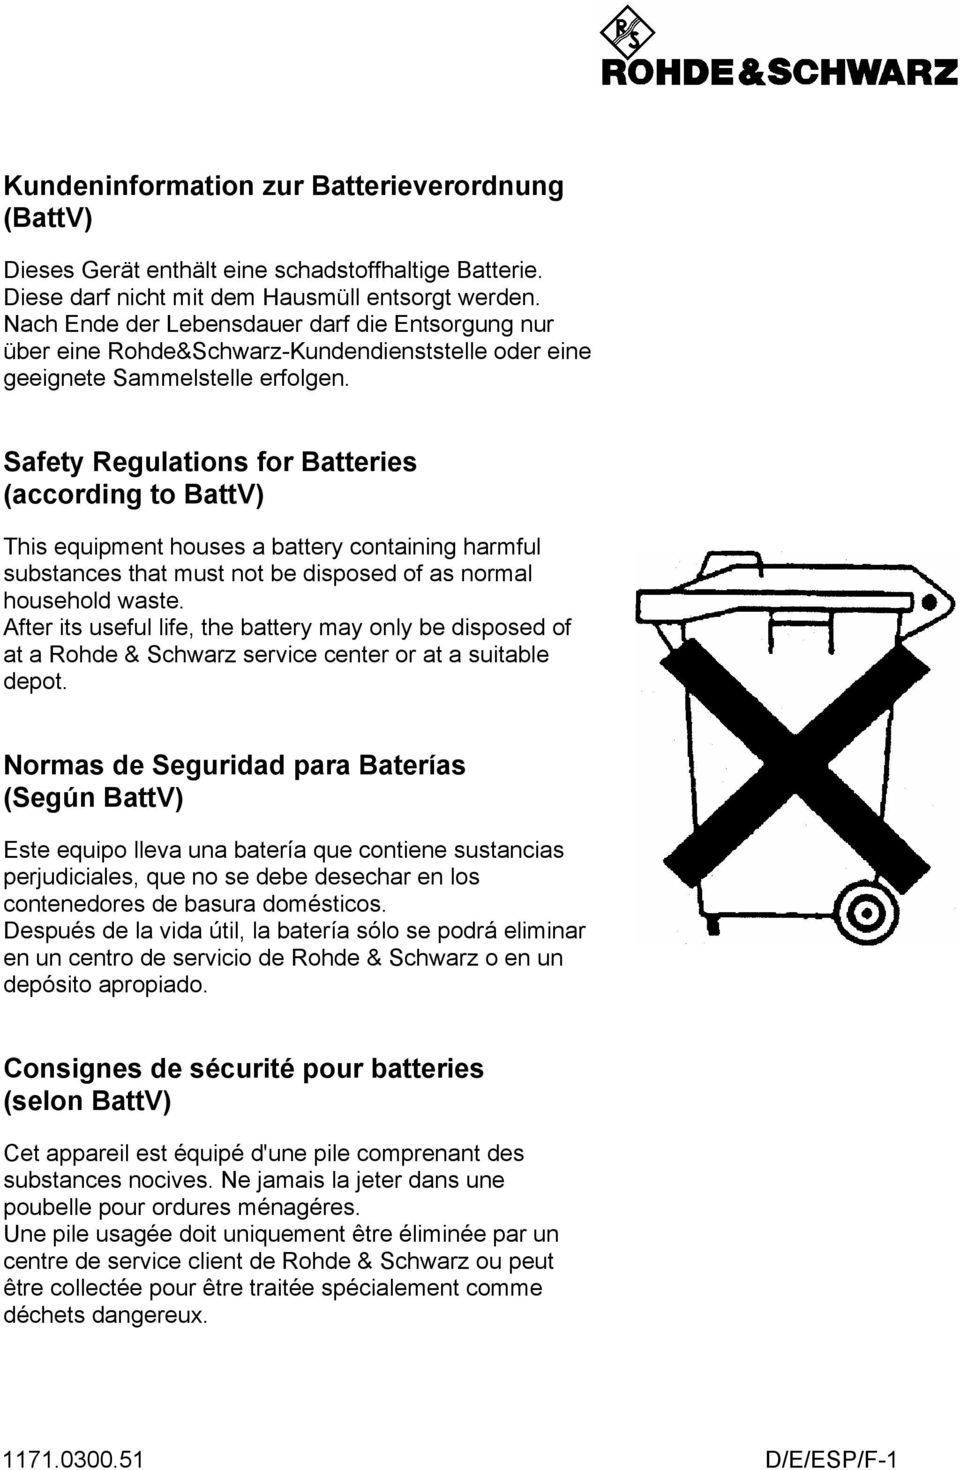 Safety Regulations for Batteries (according to BattV) This equipment houses a battery containing harmful substances that must not be disposed of as normal household waste.